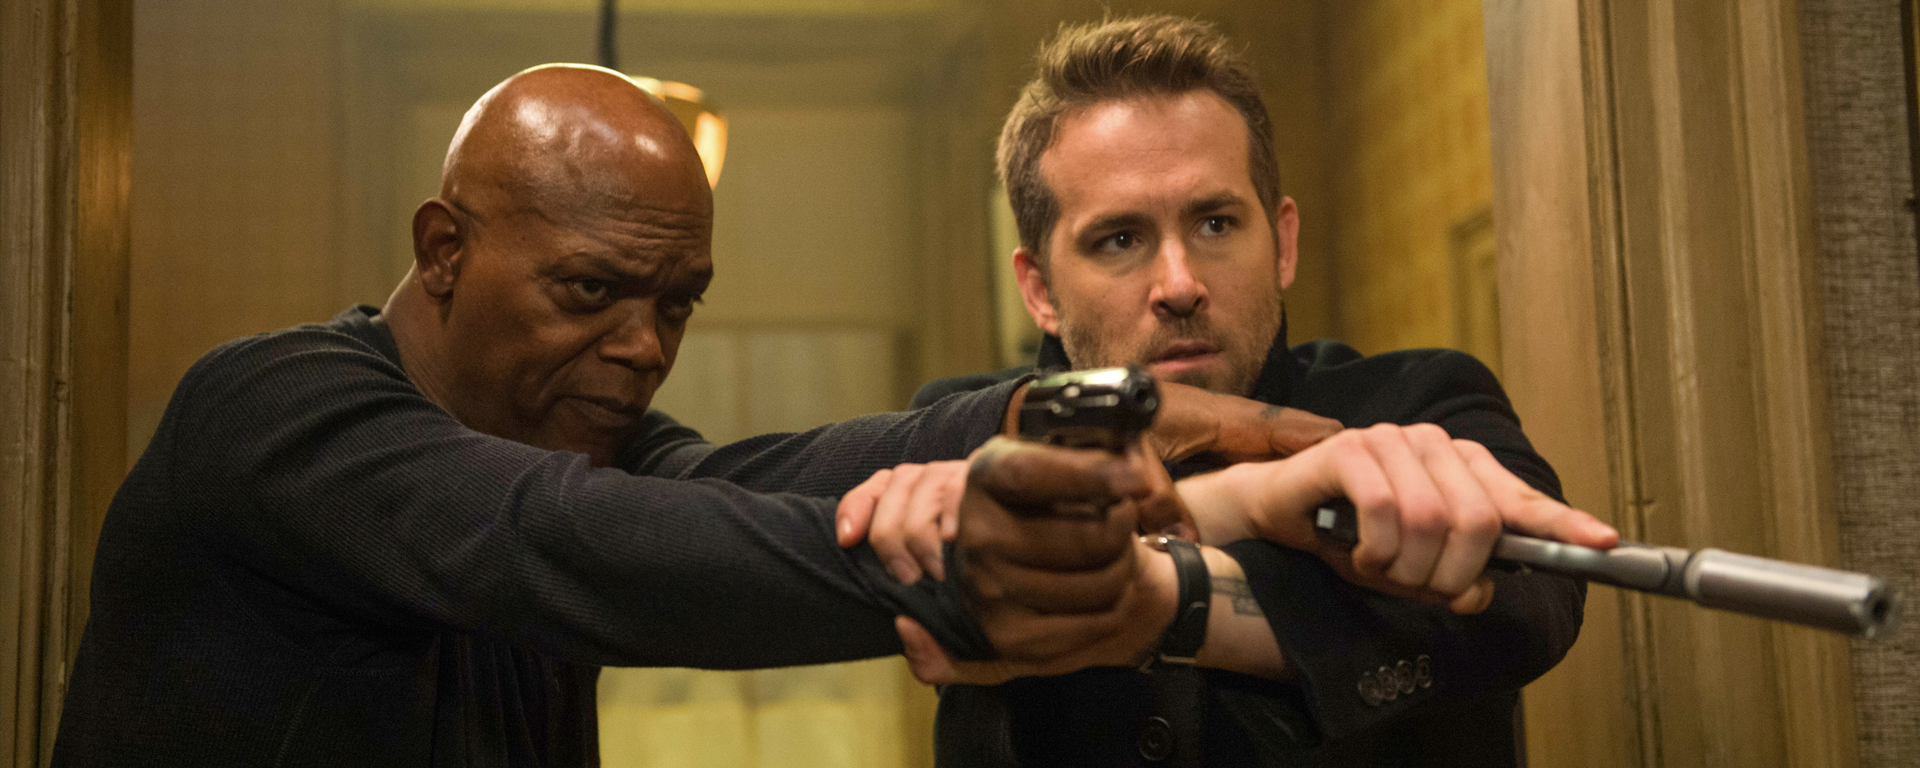 <em>The Hitman's Bodyguard</em>